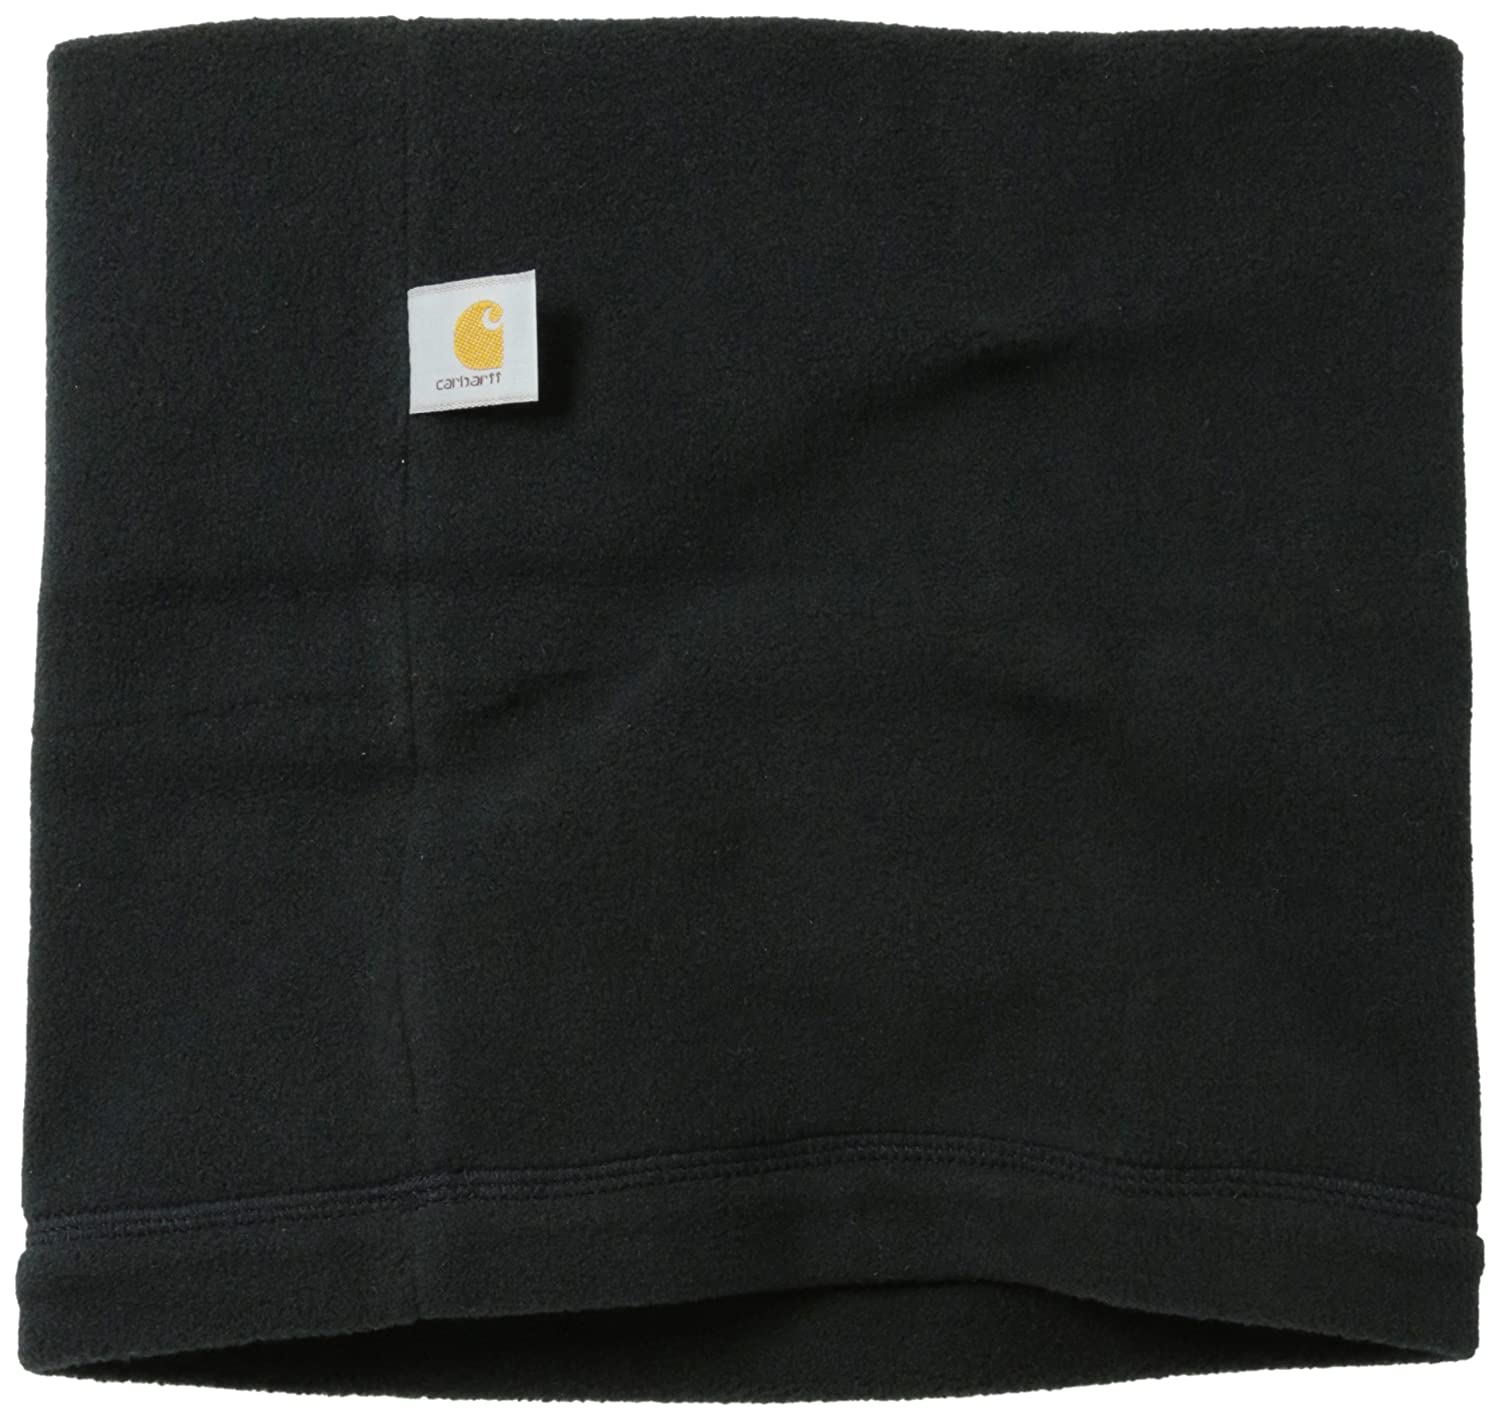 Carhartt Mens Fleece Neck Gaiter Black One Size Carhartt Sportswear - Mens A204-BLK